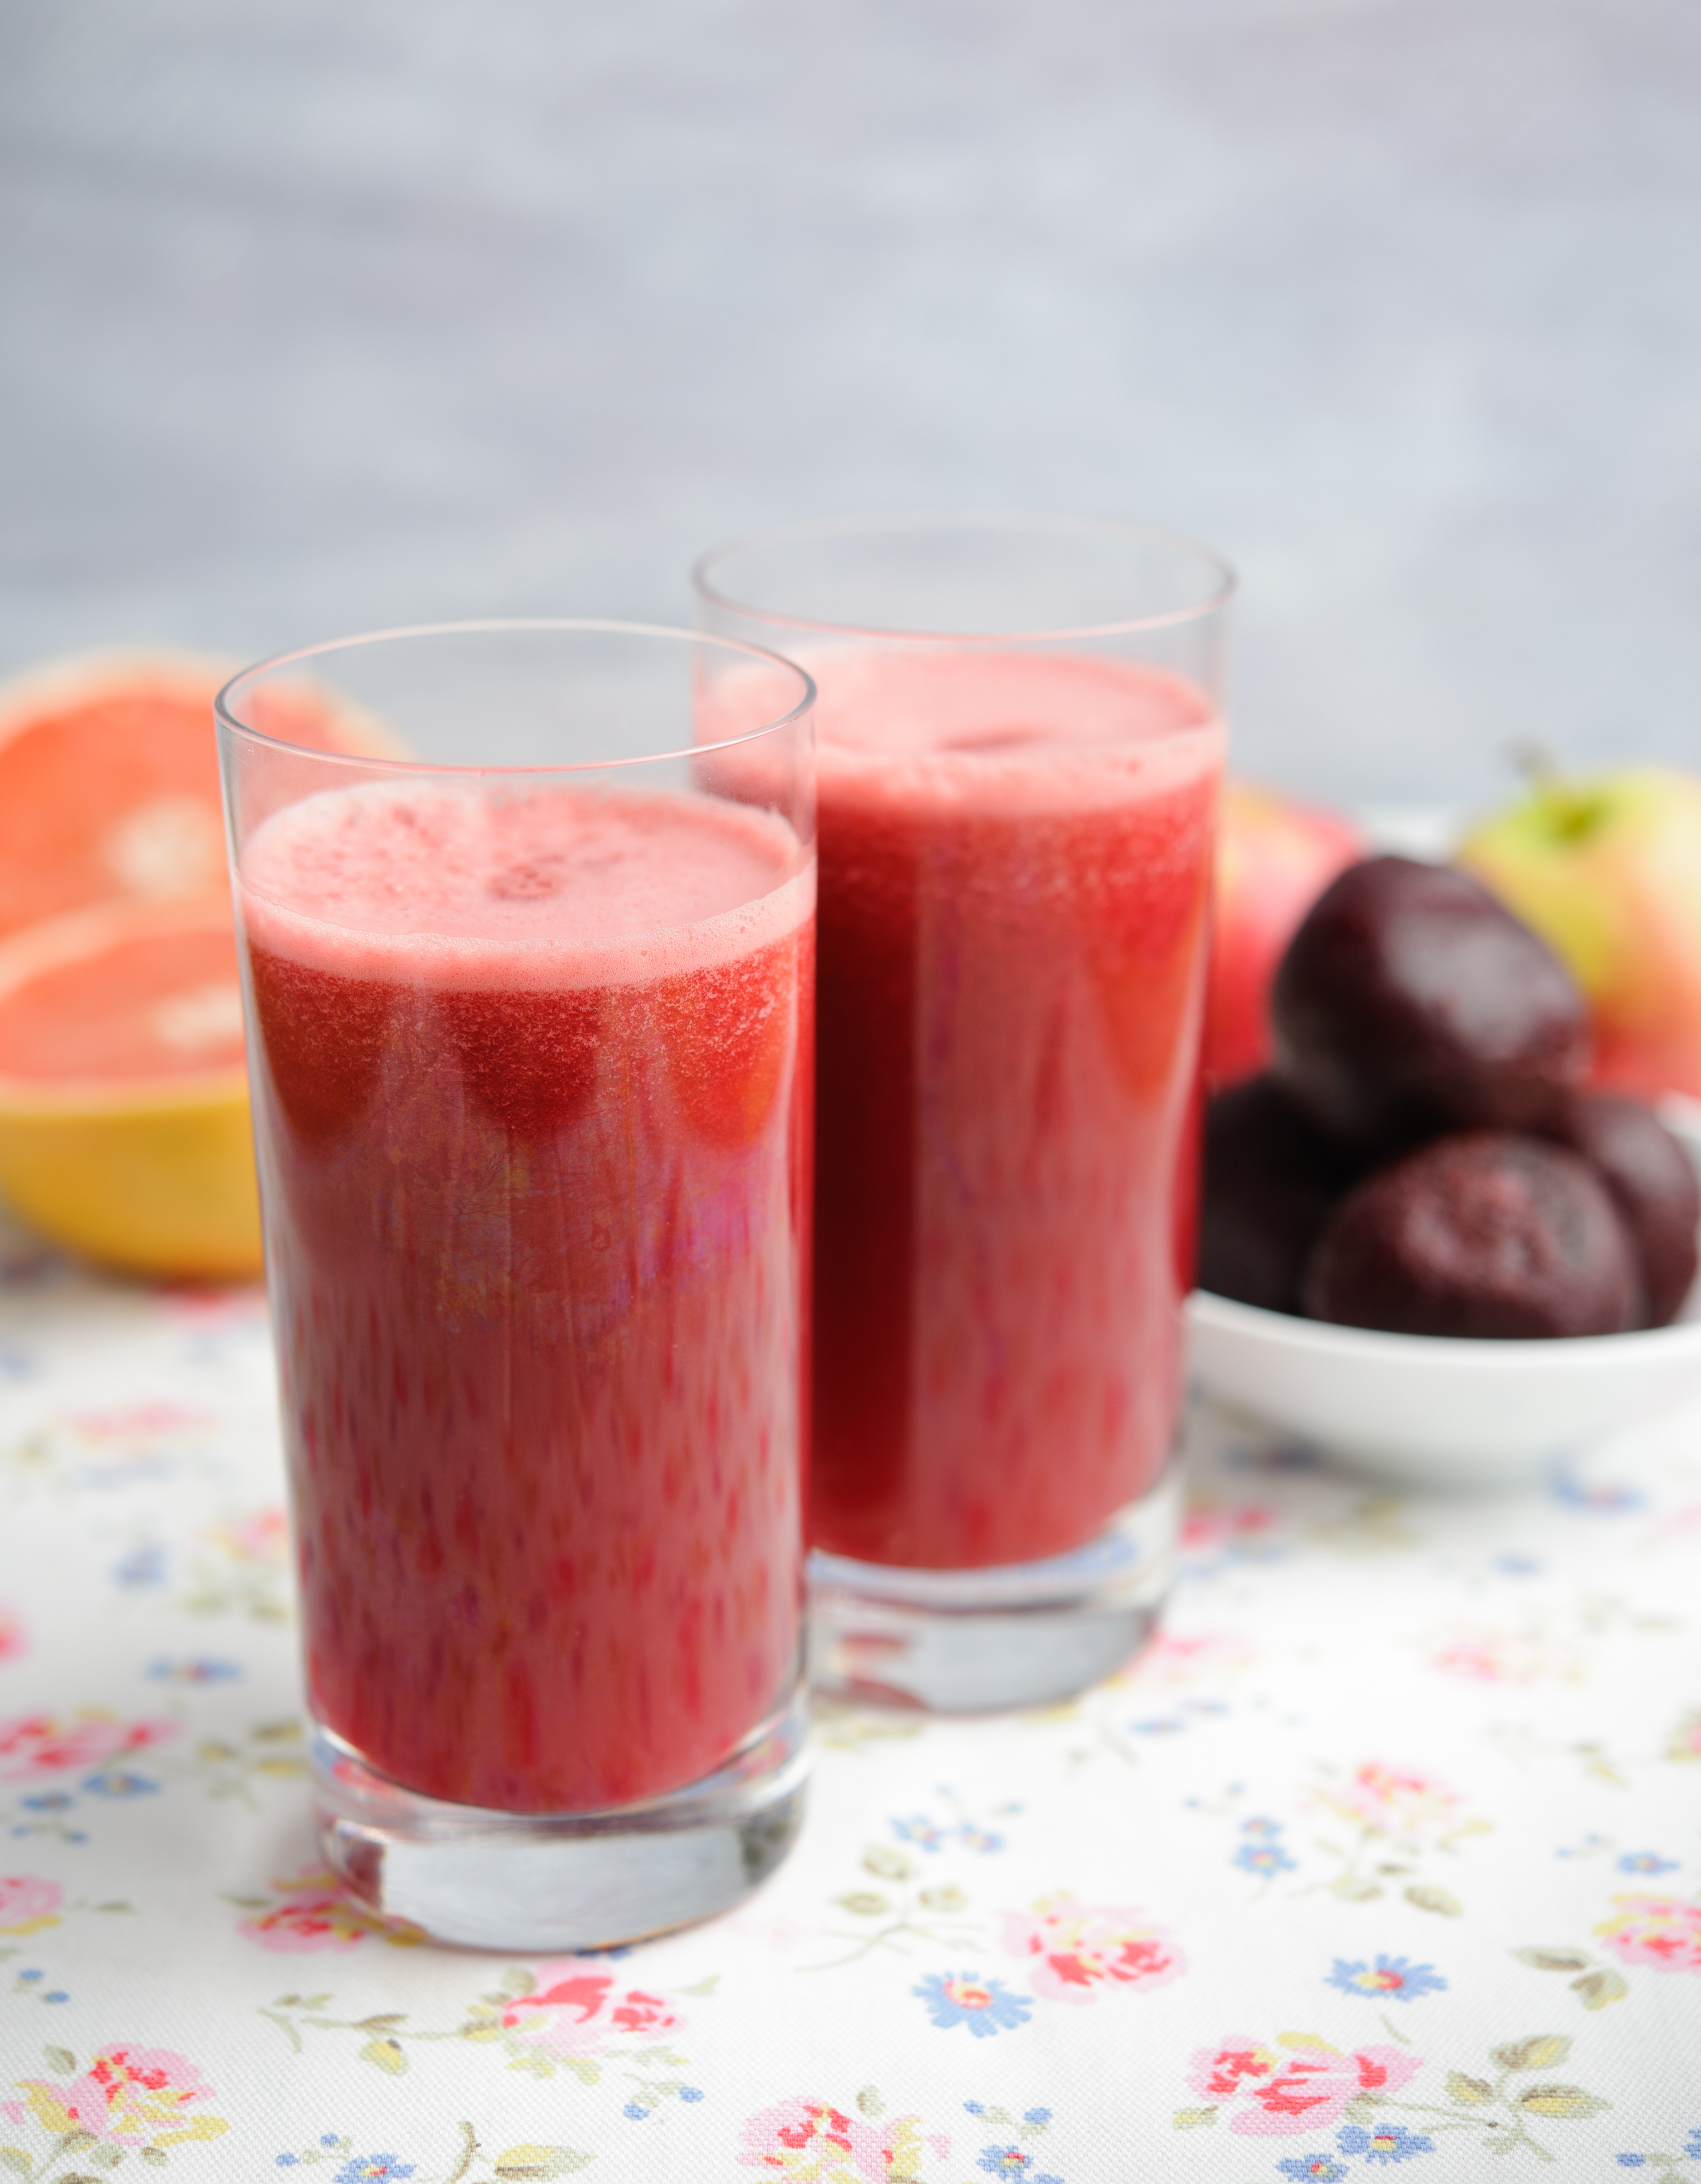 Beetroot Juice Juice Love Beetroot uk